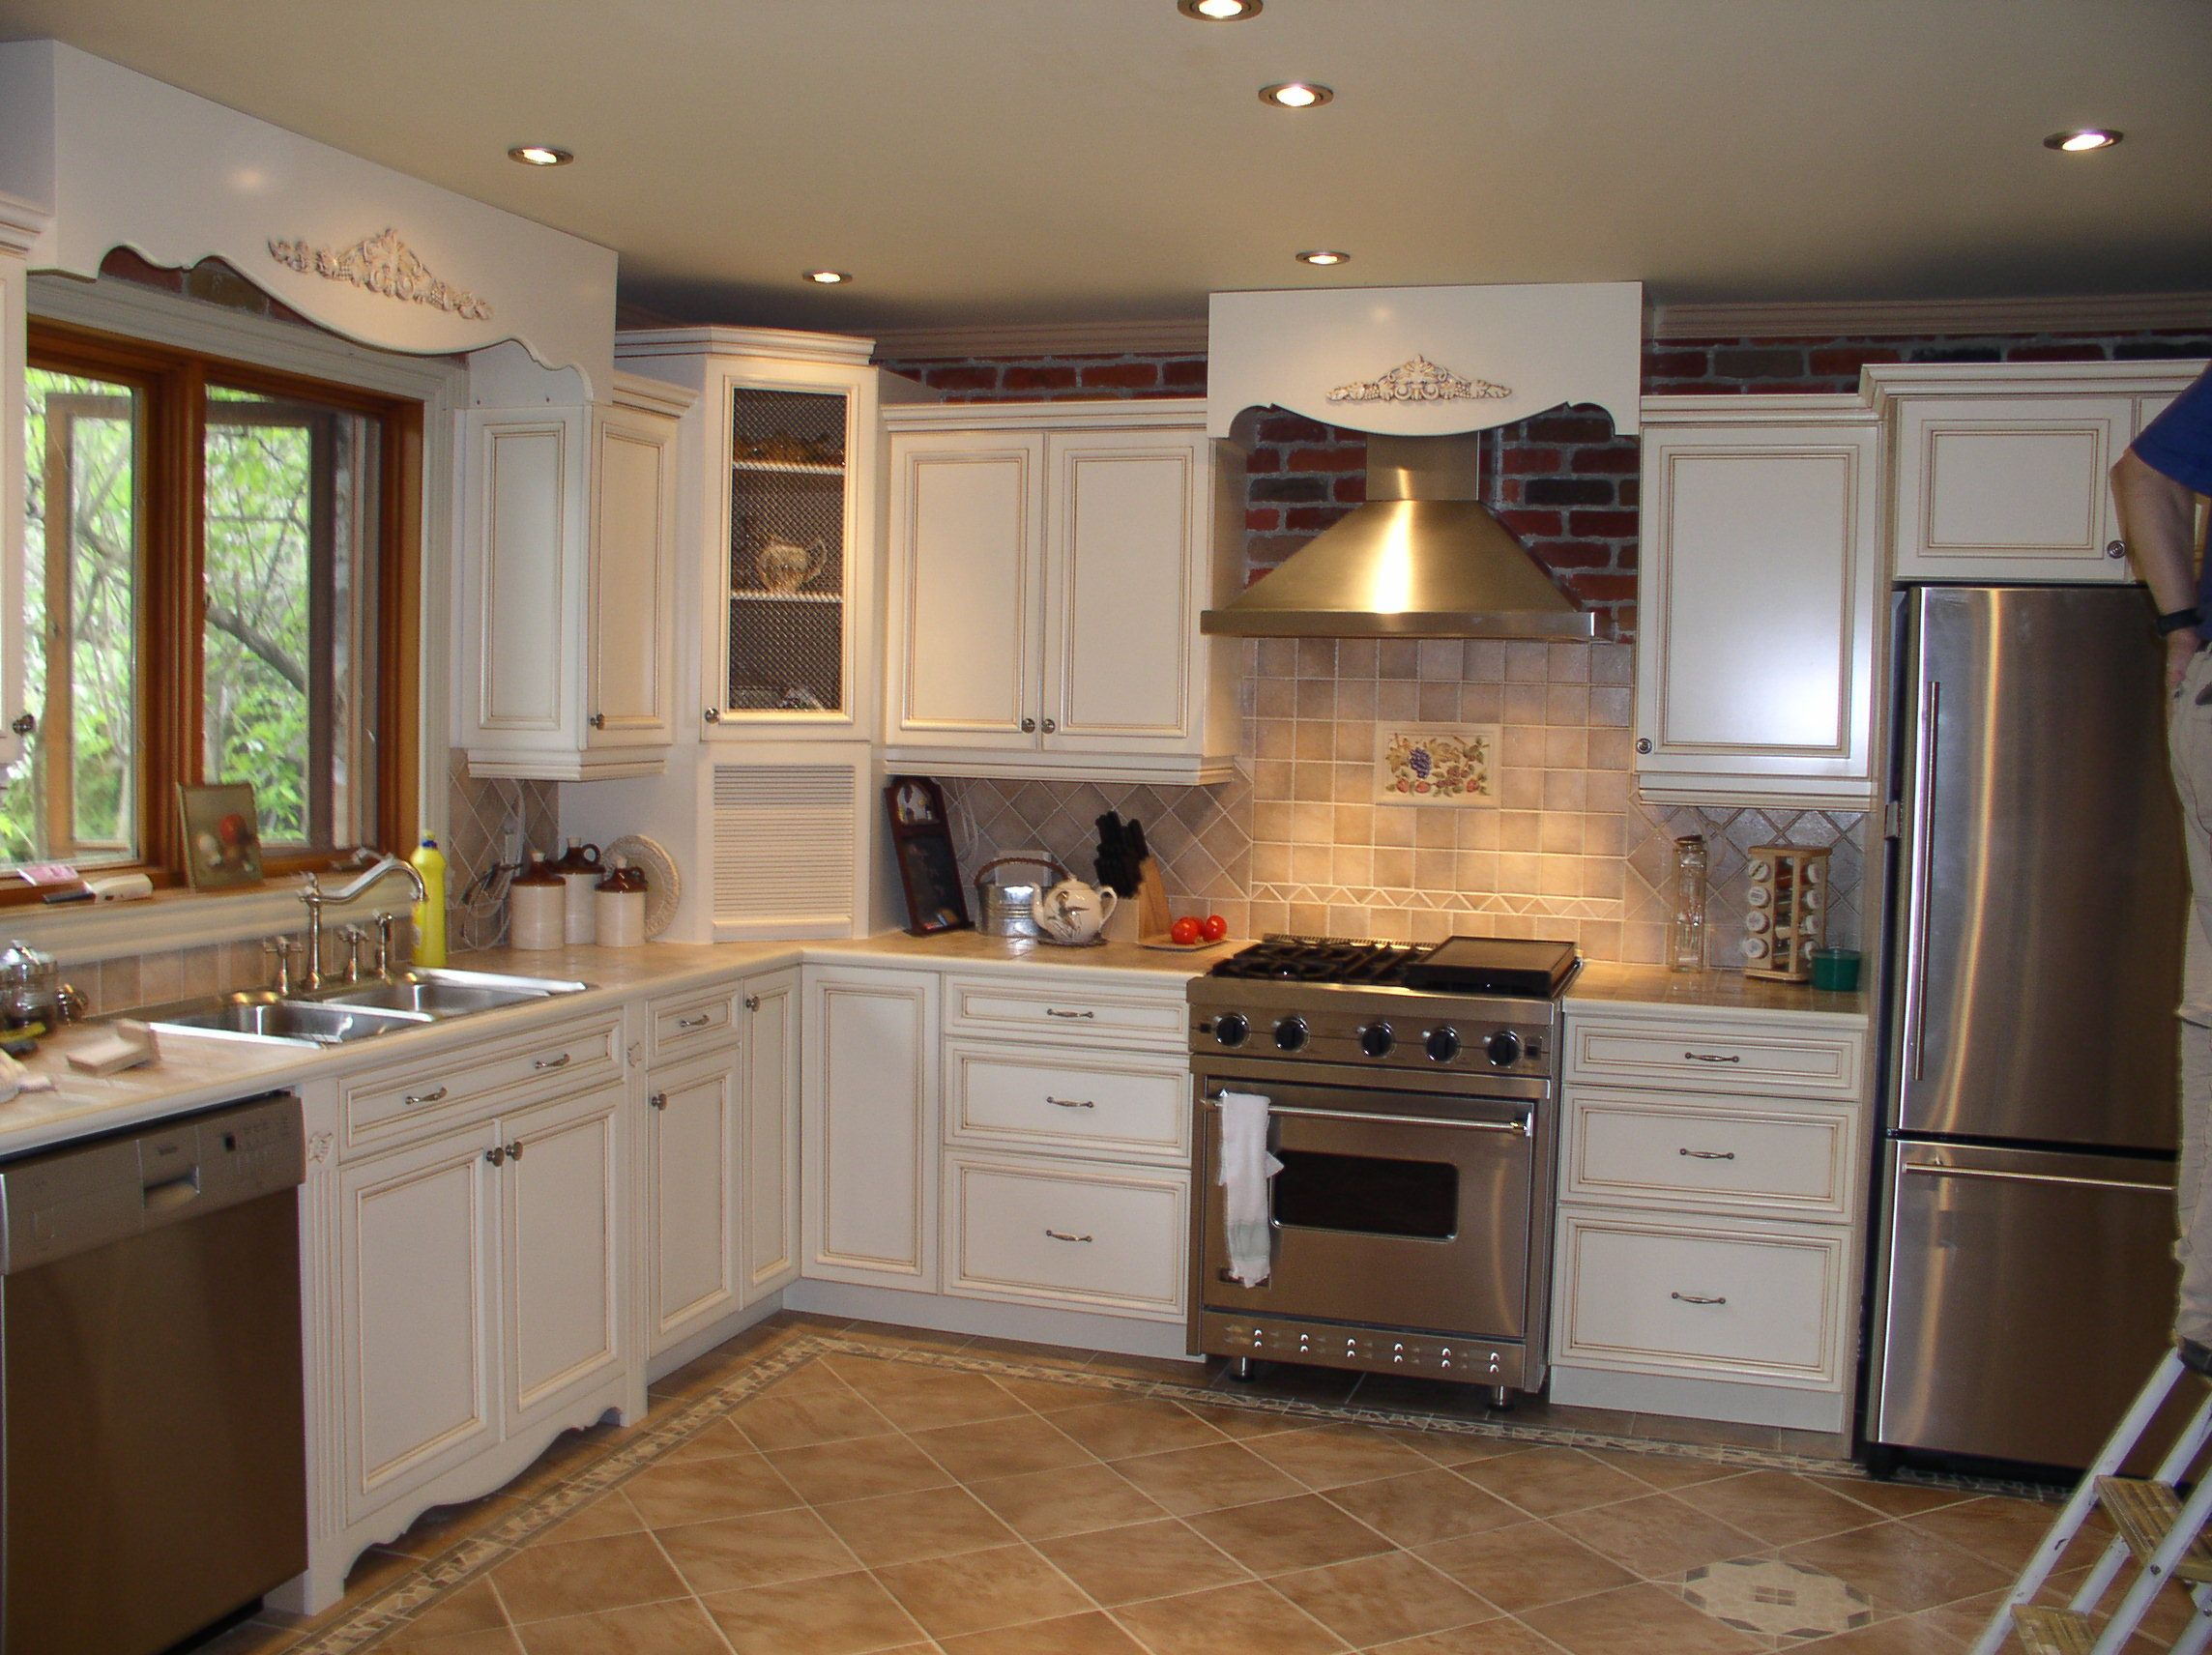 Are you looking for kitchen remodeling ideas?